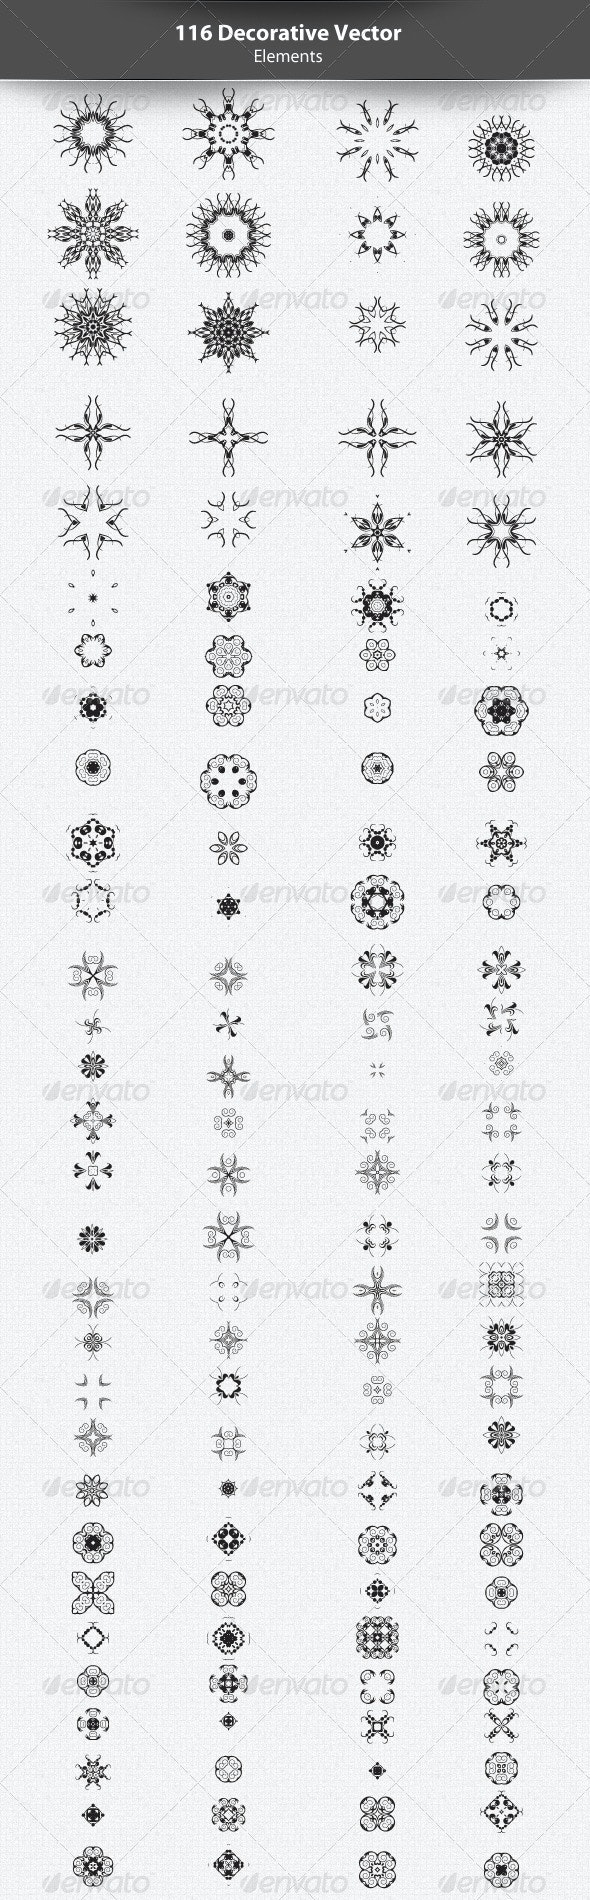 116 Abstract Decorative Vector Elements - Decorative Vectors